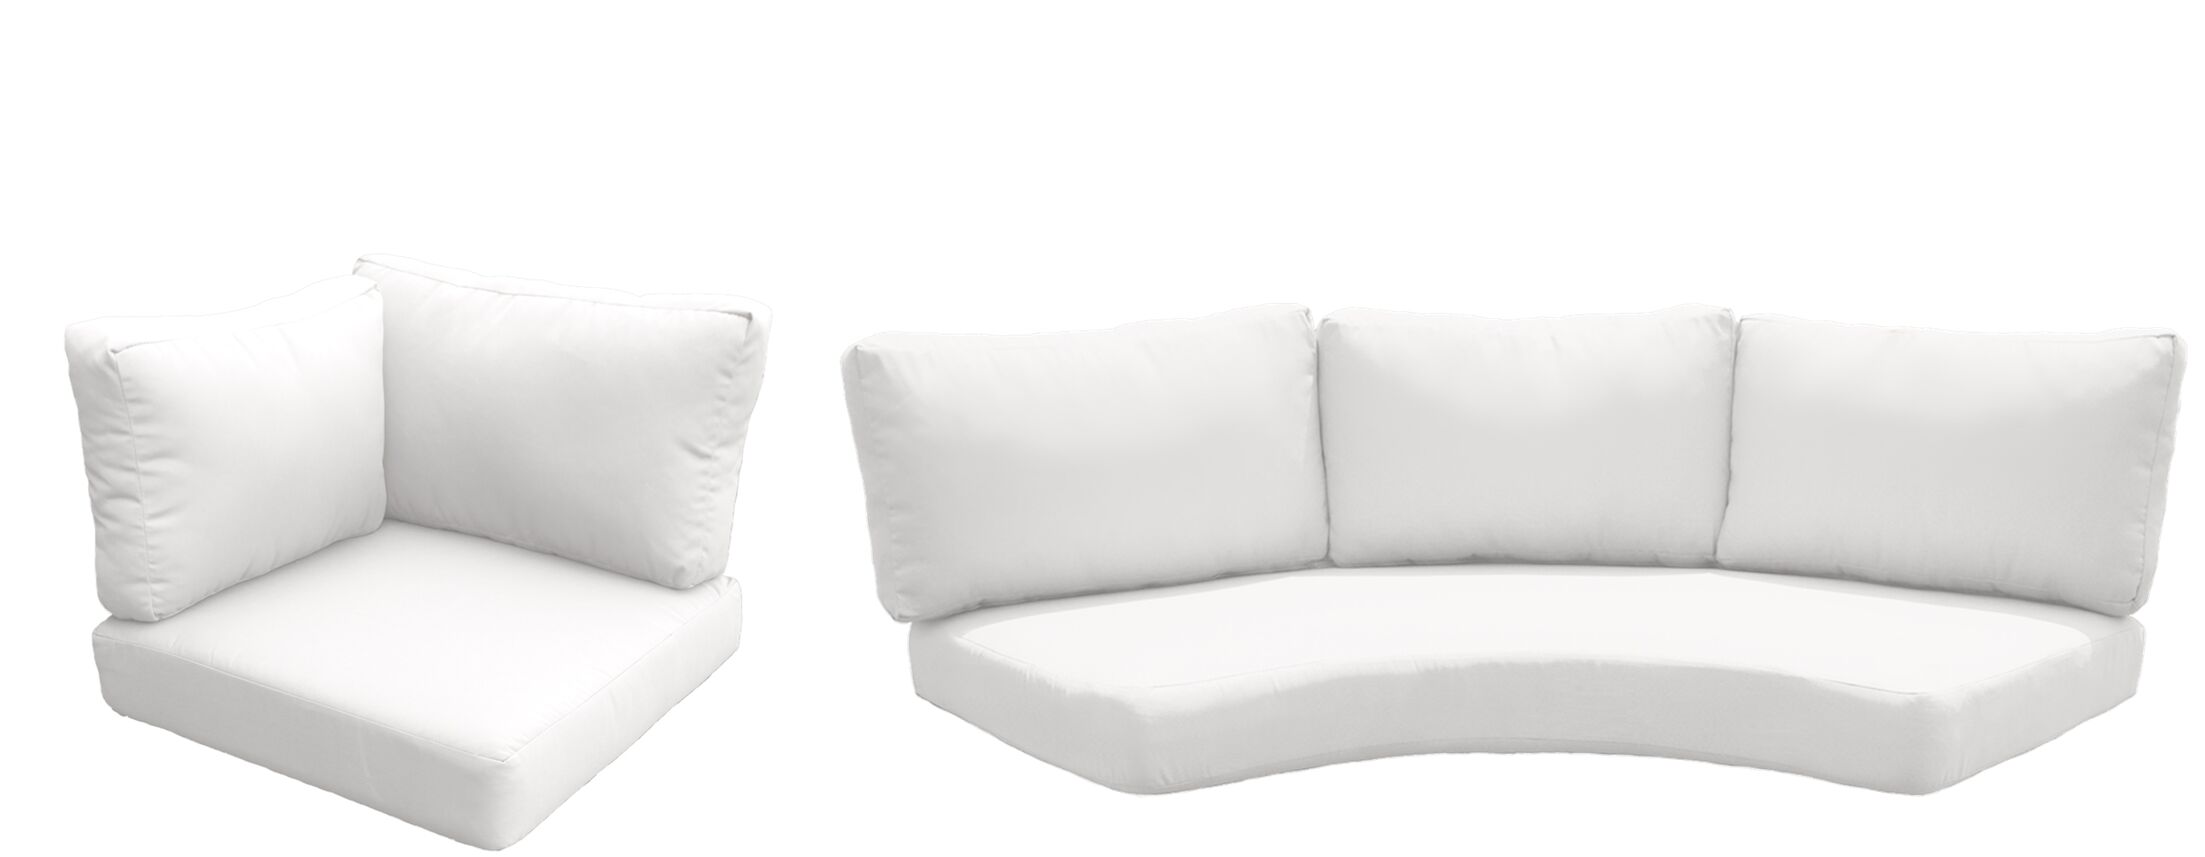 East Village Outdoor 10 Piece Lounge Chair Cushion Set Fabric: White